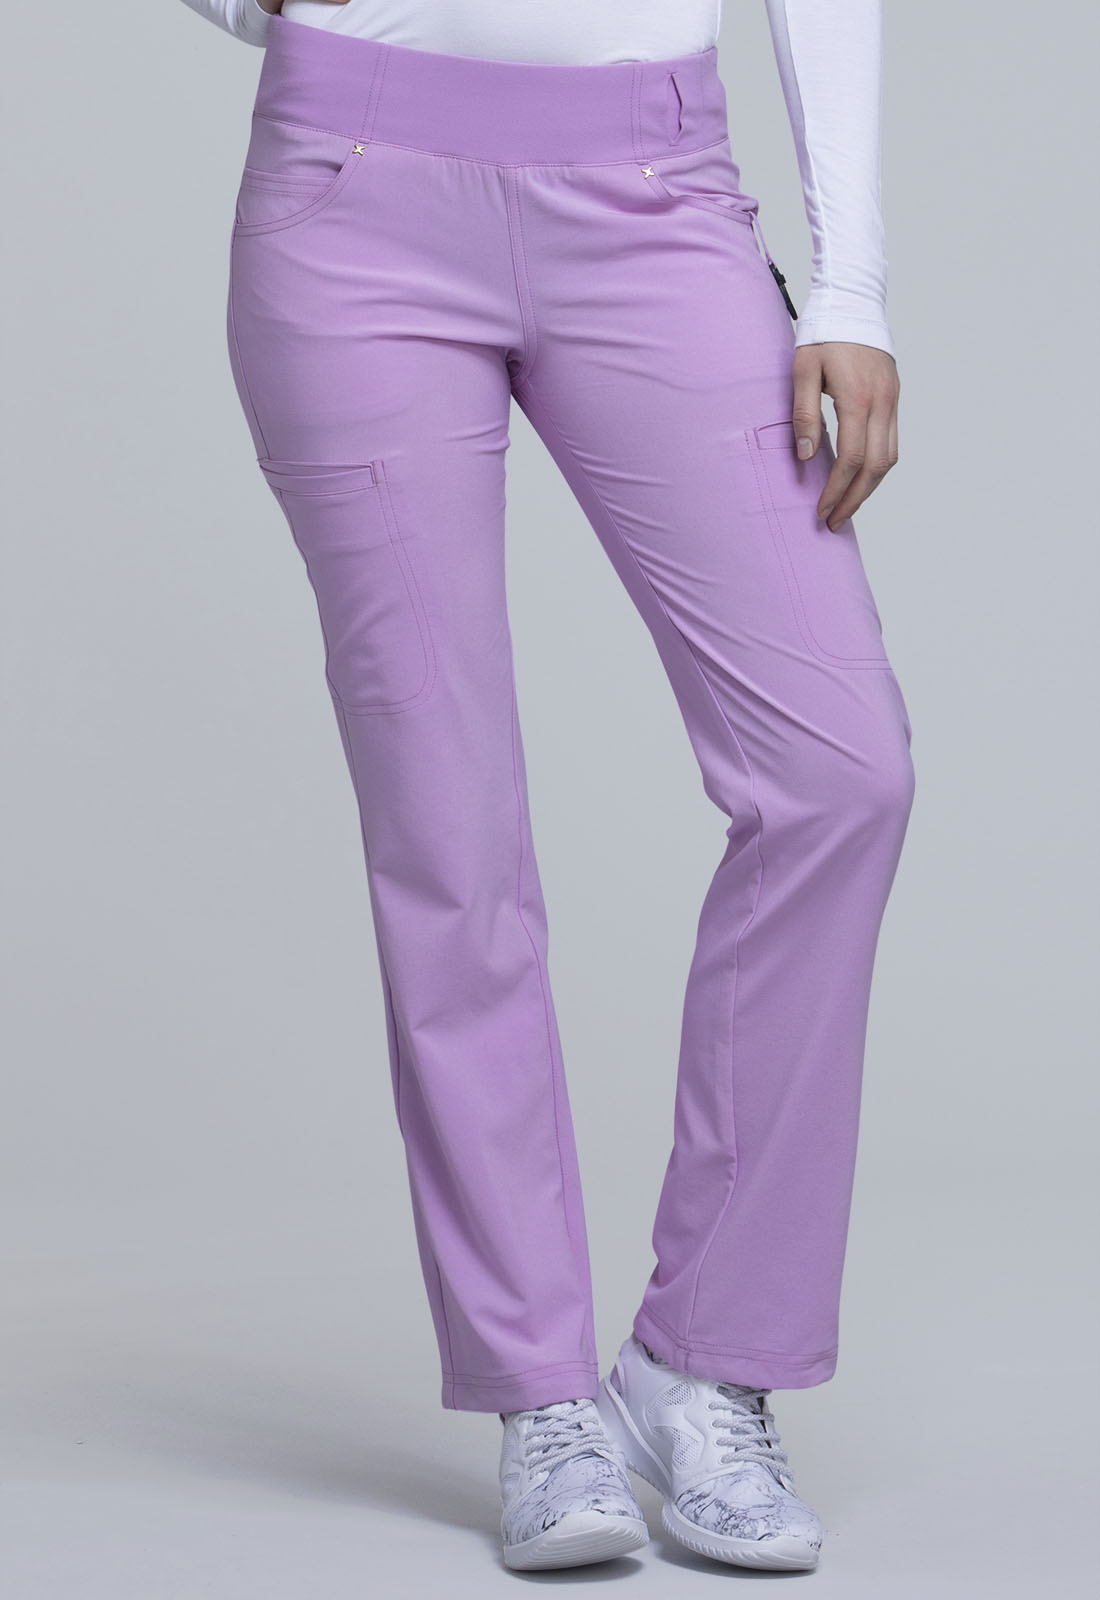 cc10ee65202 iFlex Mid Rise Straight Leg Pull-on Pant in Lilac Love CK002-LILE ...